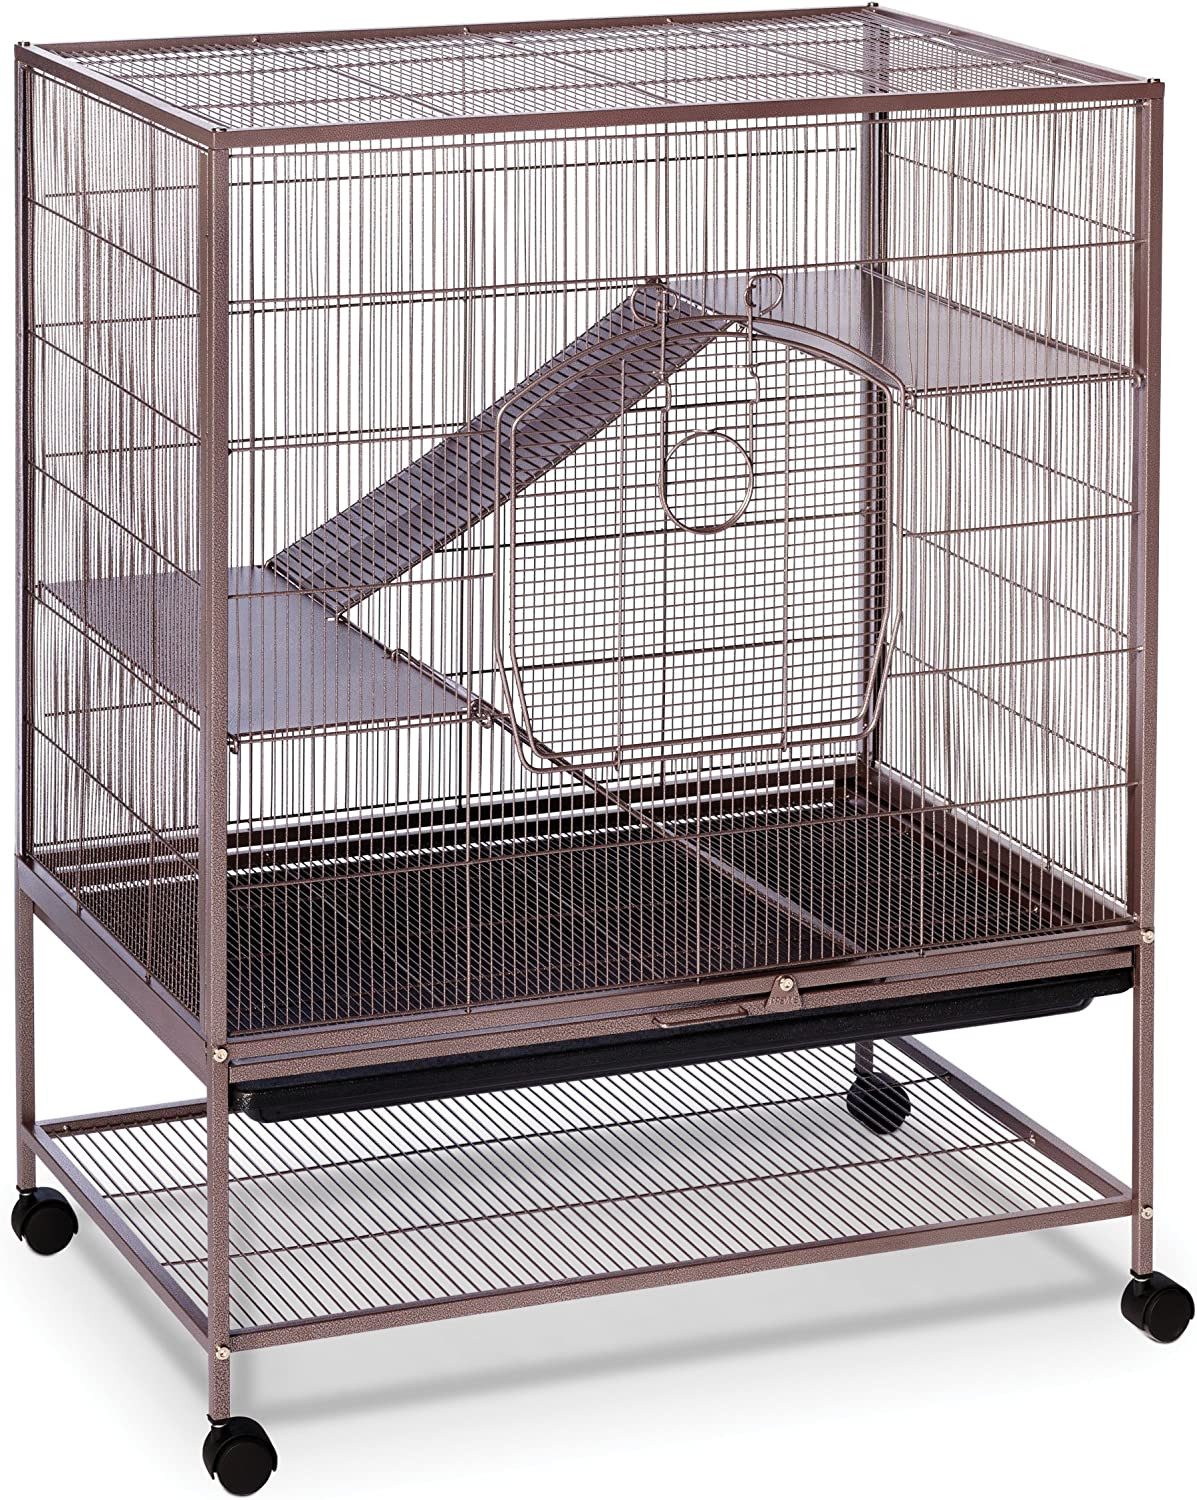 B001W8MDKO Prevue Rat and Chinchilla Cage 495 Earthtone Dusted Rose, 31 x 20.5 x 40 IN A13eGvWokgL.SL1500_